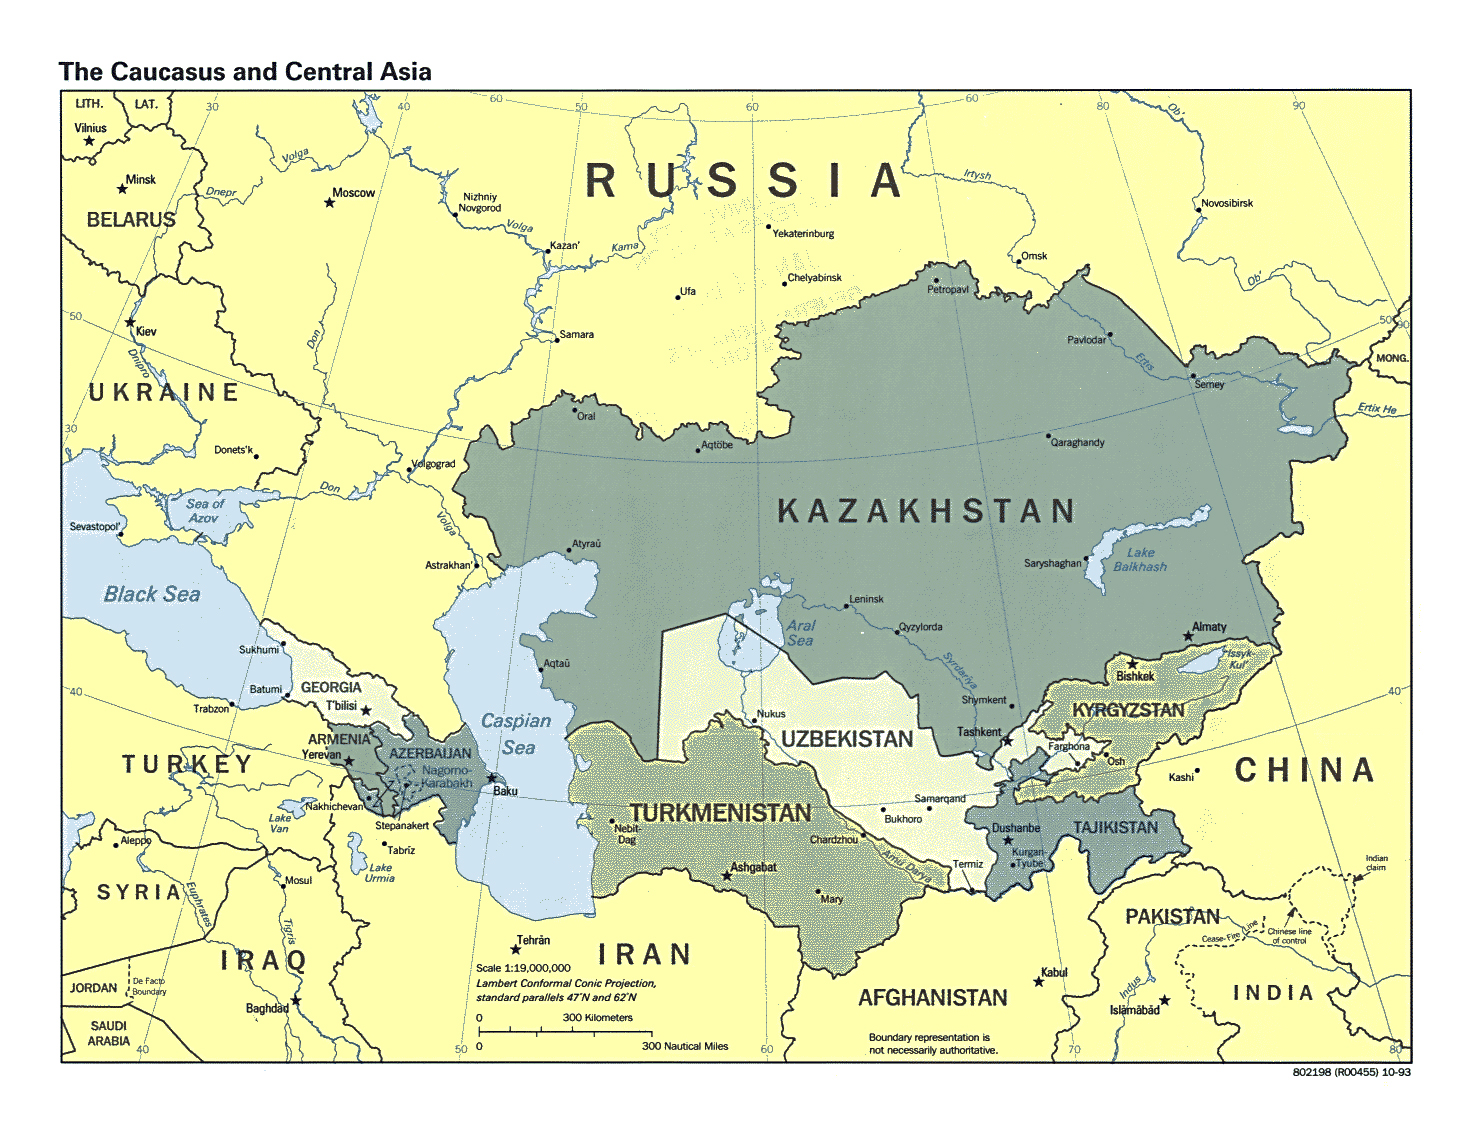 Detailed Political Map Of The Caucasus And Central Asia With